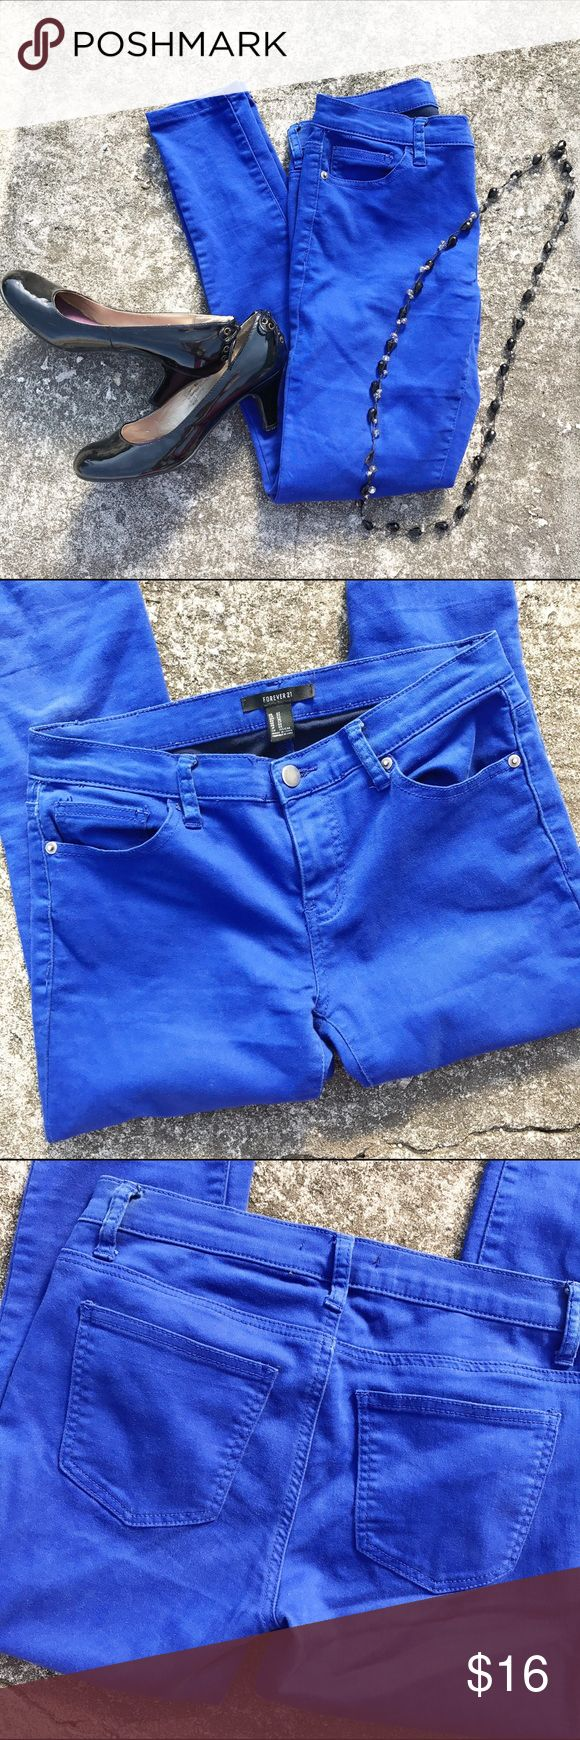 "Forever 21 Electric Blue Stretch Skinny Leg Jeans Size 27 with a 29.5"" inseam.  Electric blue stretch skinnies. Soft like jeggins but more structured like a jeans. Forever 21 Jeans"